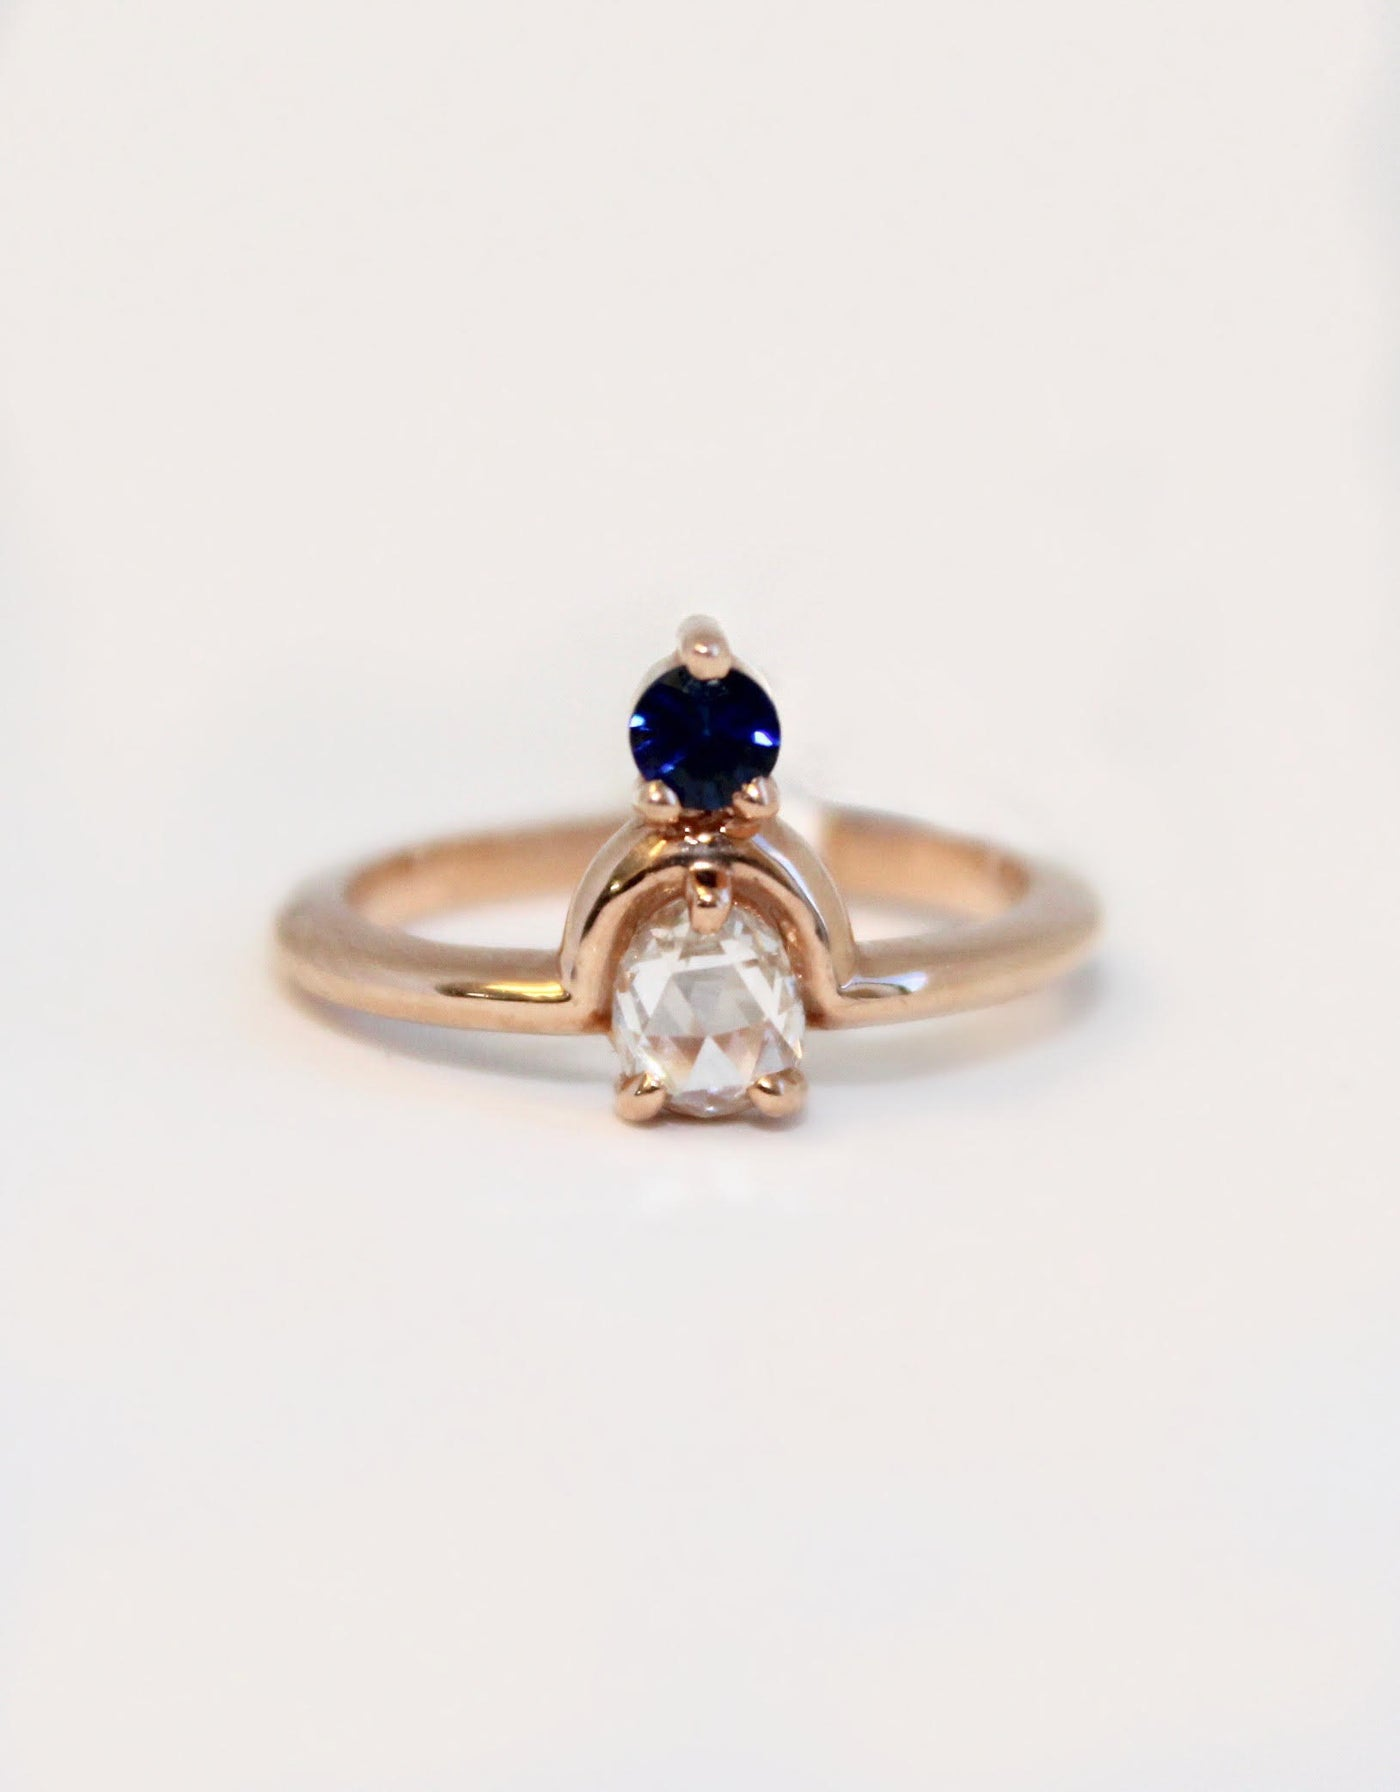 Round Cut Diamond Ring with Sapphire